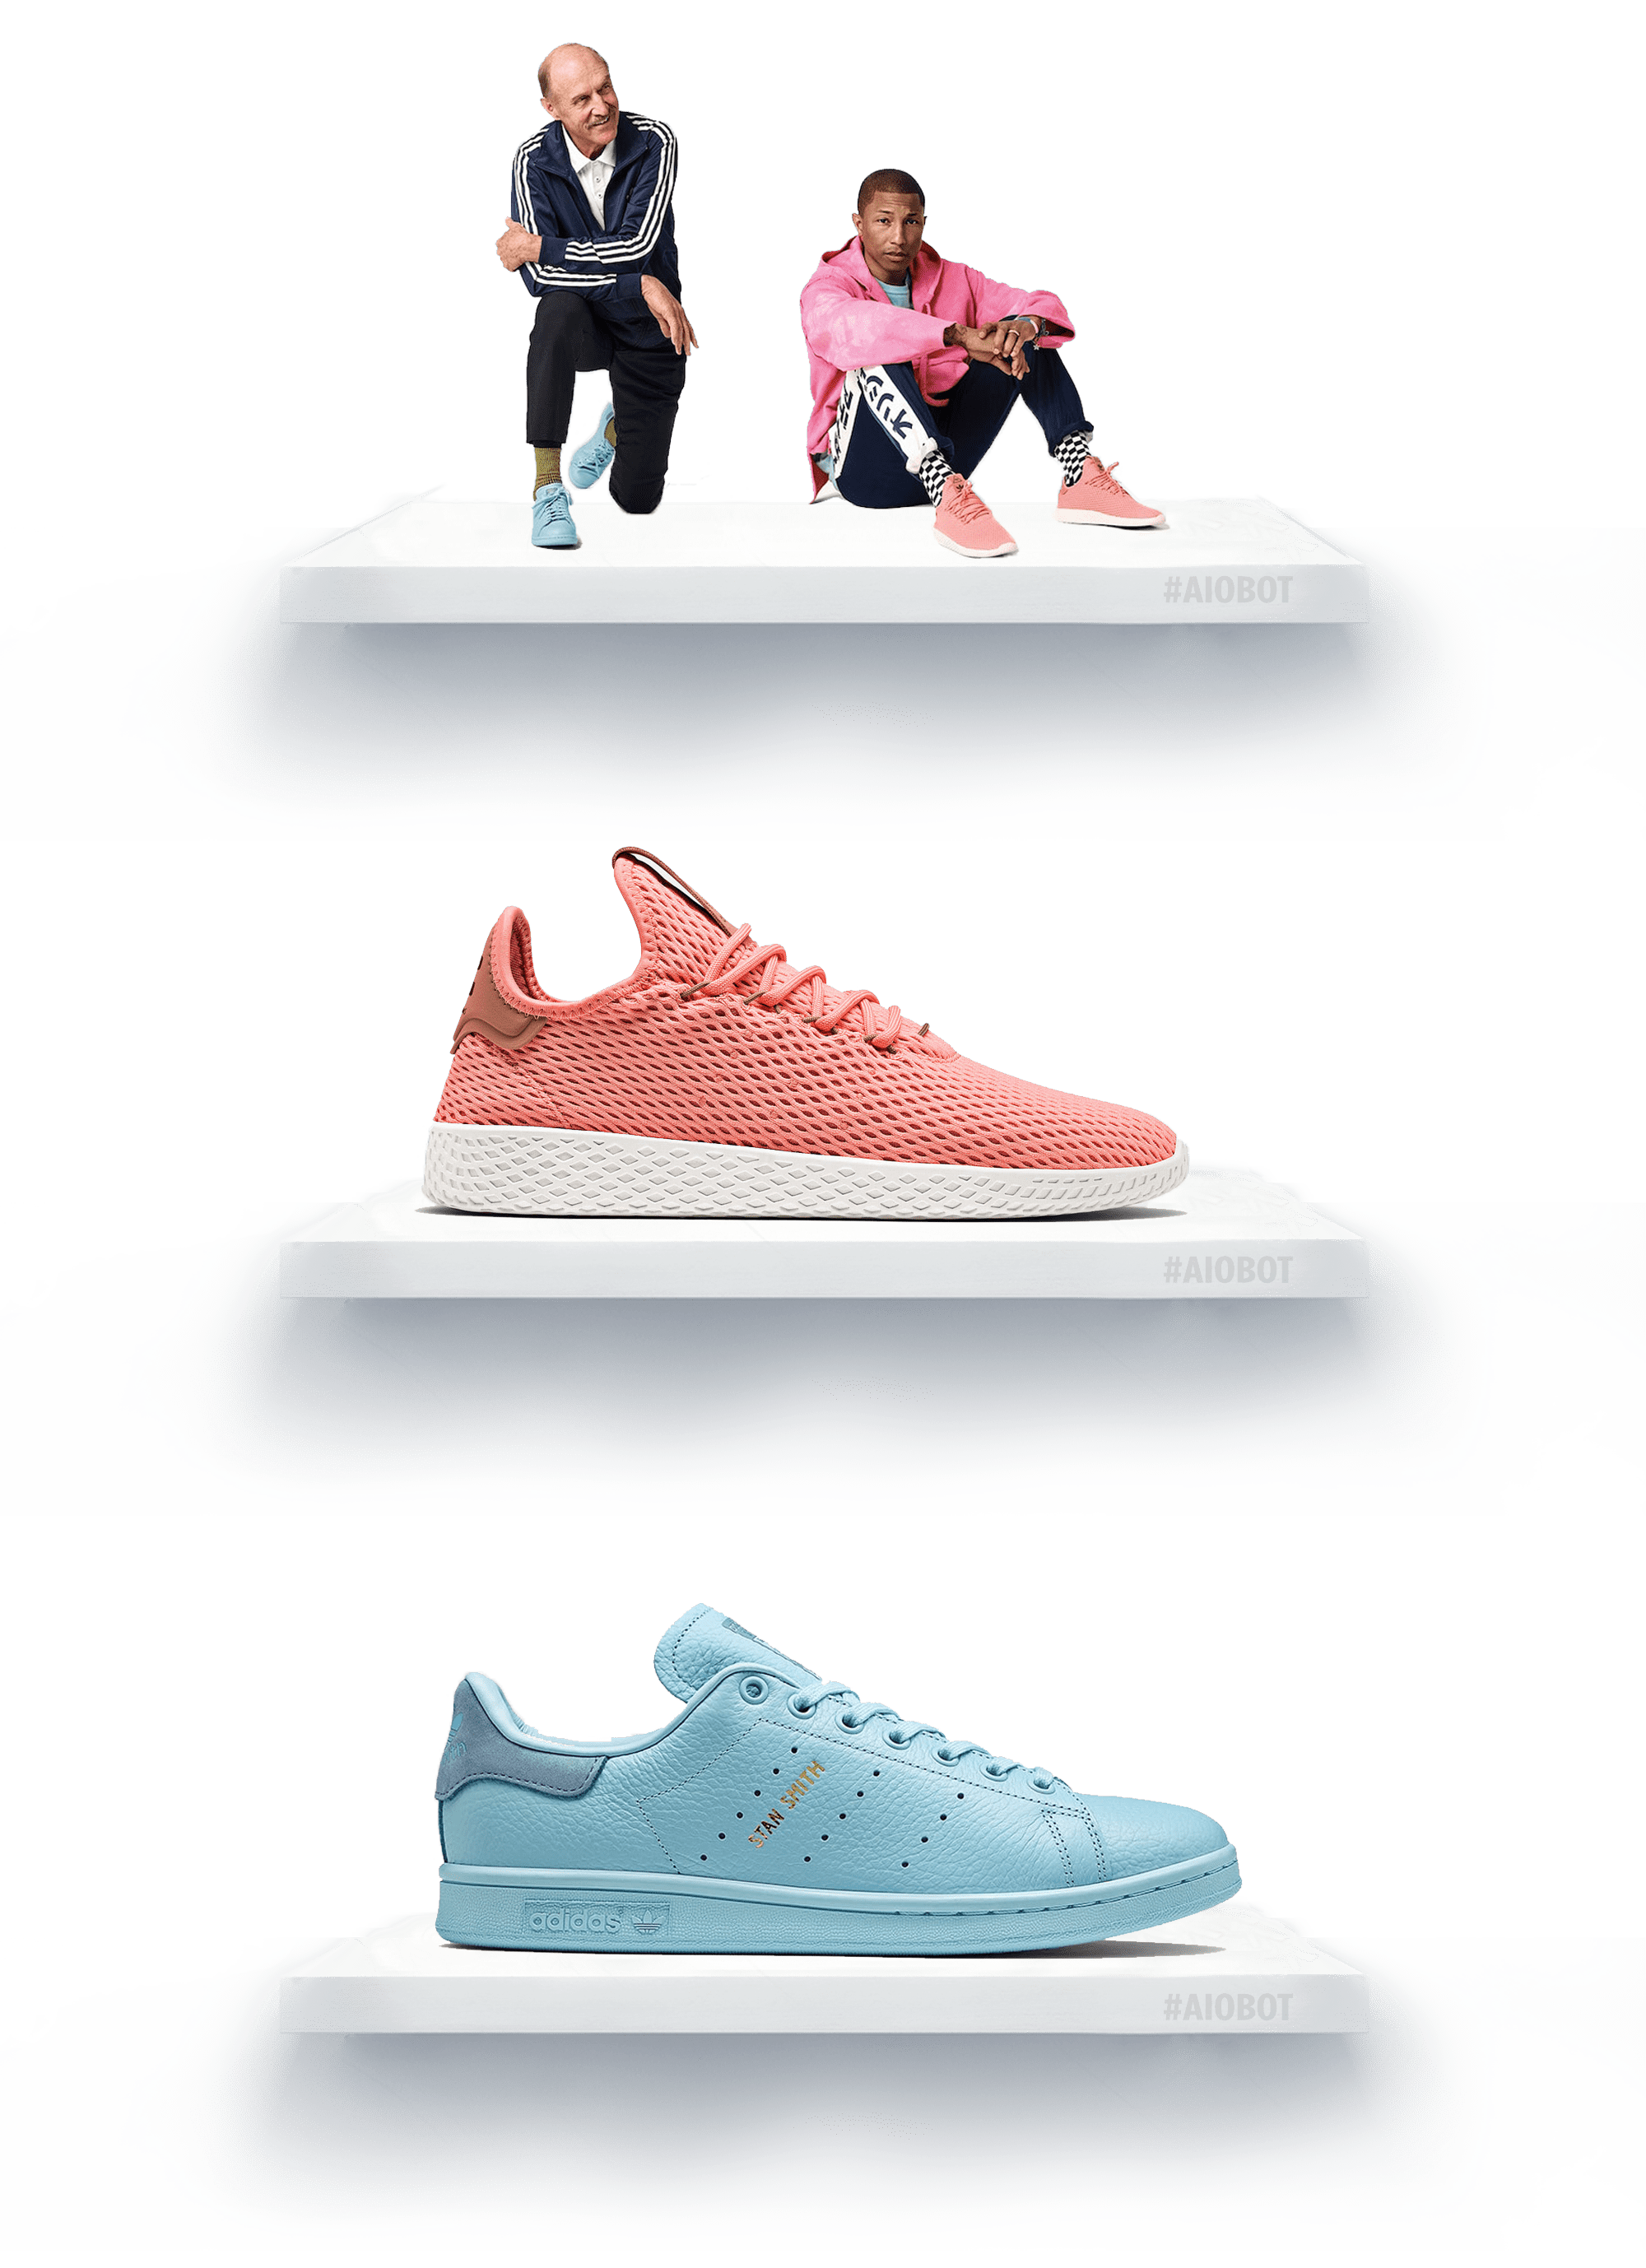 separation shoes a9db1 03ca7 Adidas Tennis Hu x adidas Stan Smith Icons | AIO bot